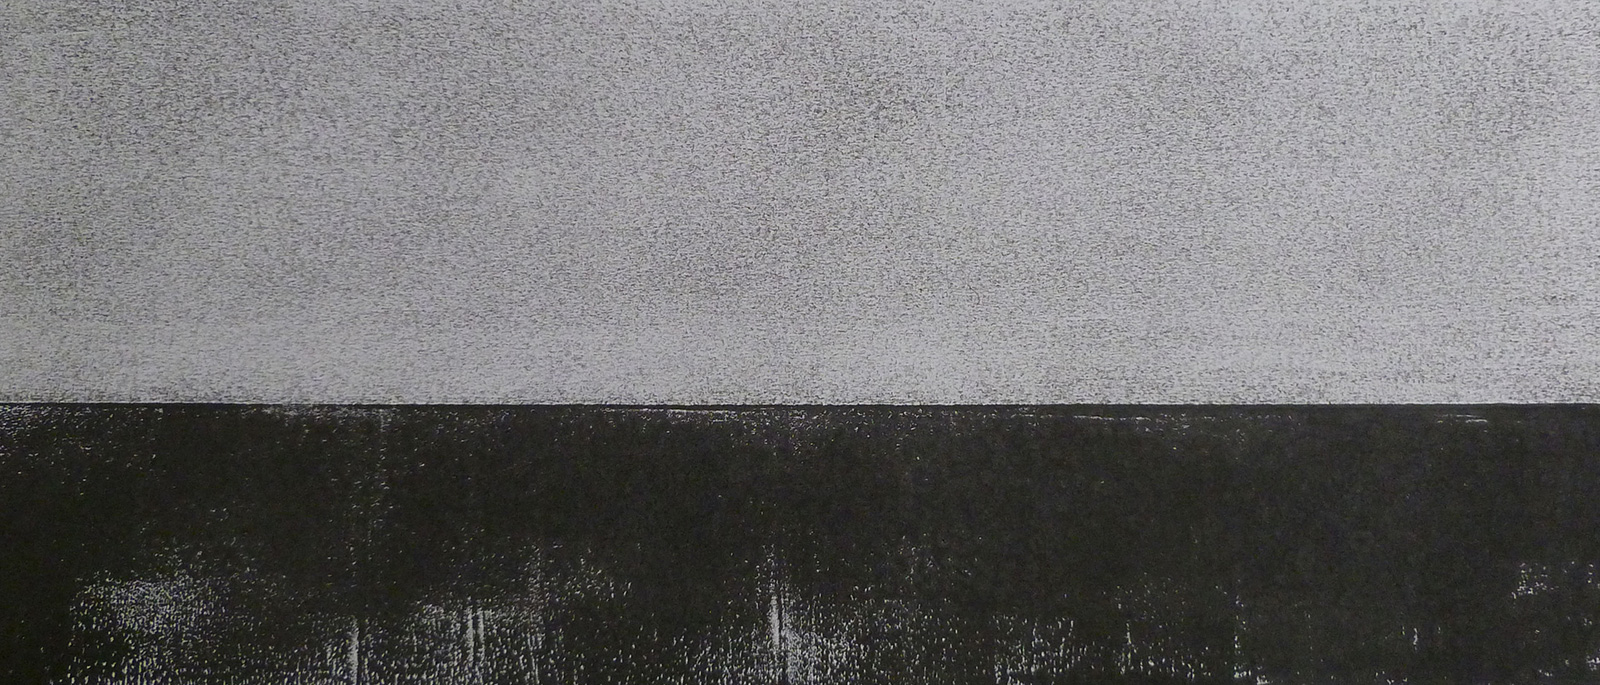 Untitled (45 x15cm) not for sale